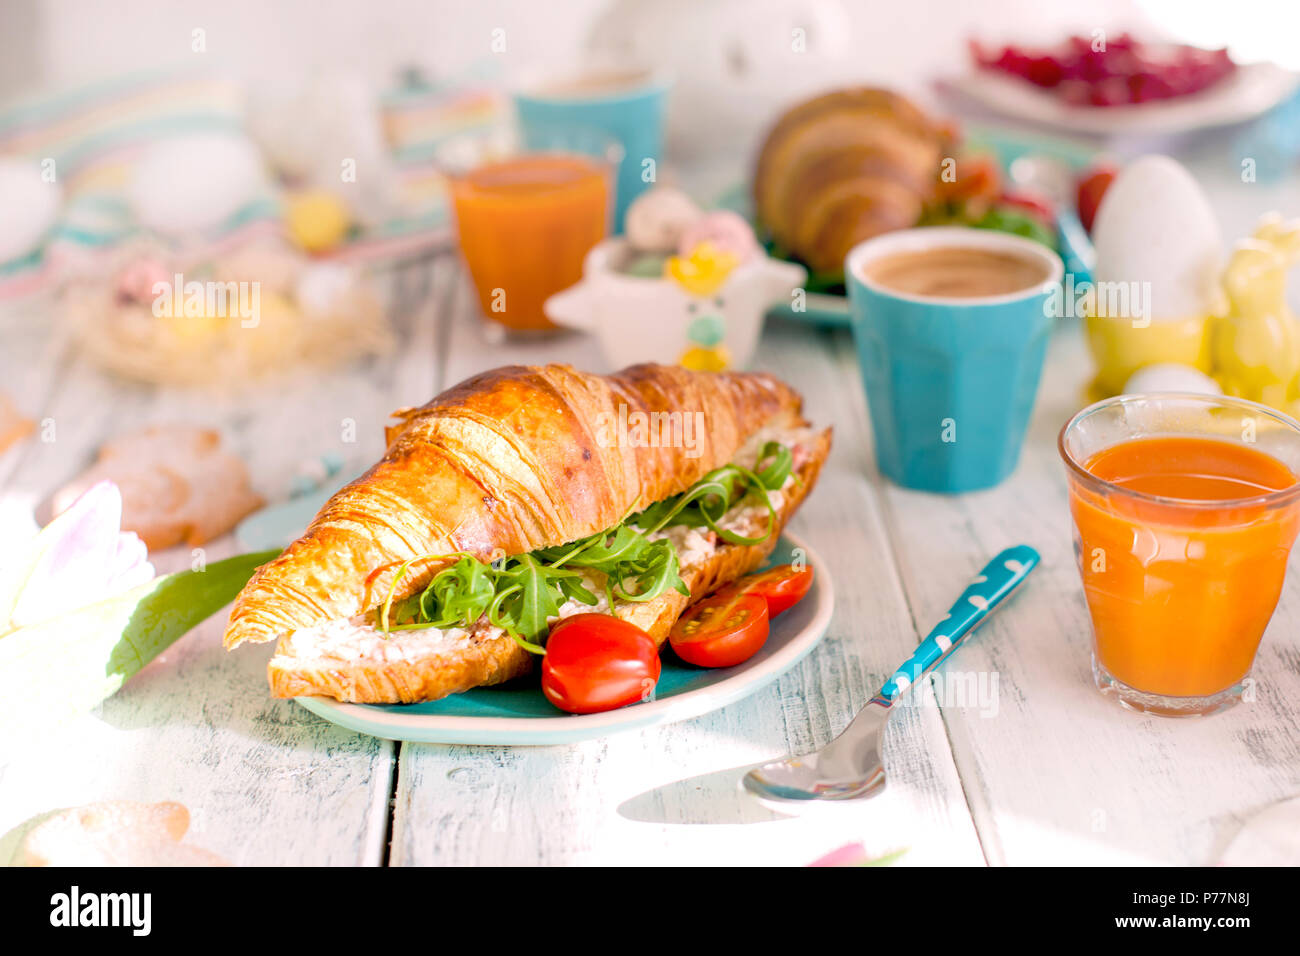 A family breakfast of croissants with rocket salad and cheese and aromatic coffee. Fresh tulips of pink color and eggs of different colors and Easter decor, ceramic rabbits. Free space for text. - Stock Image